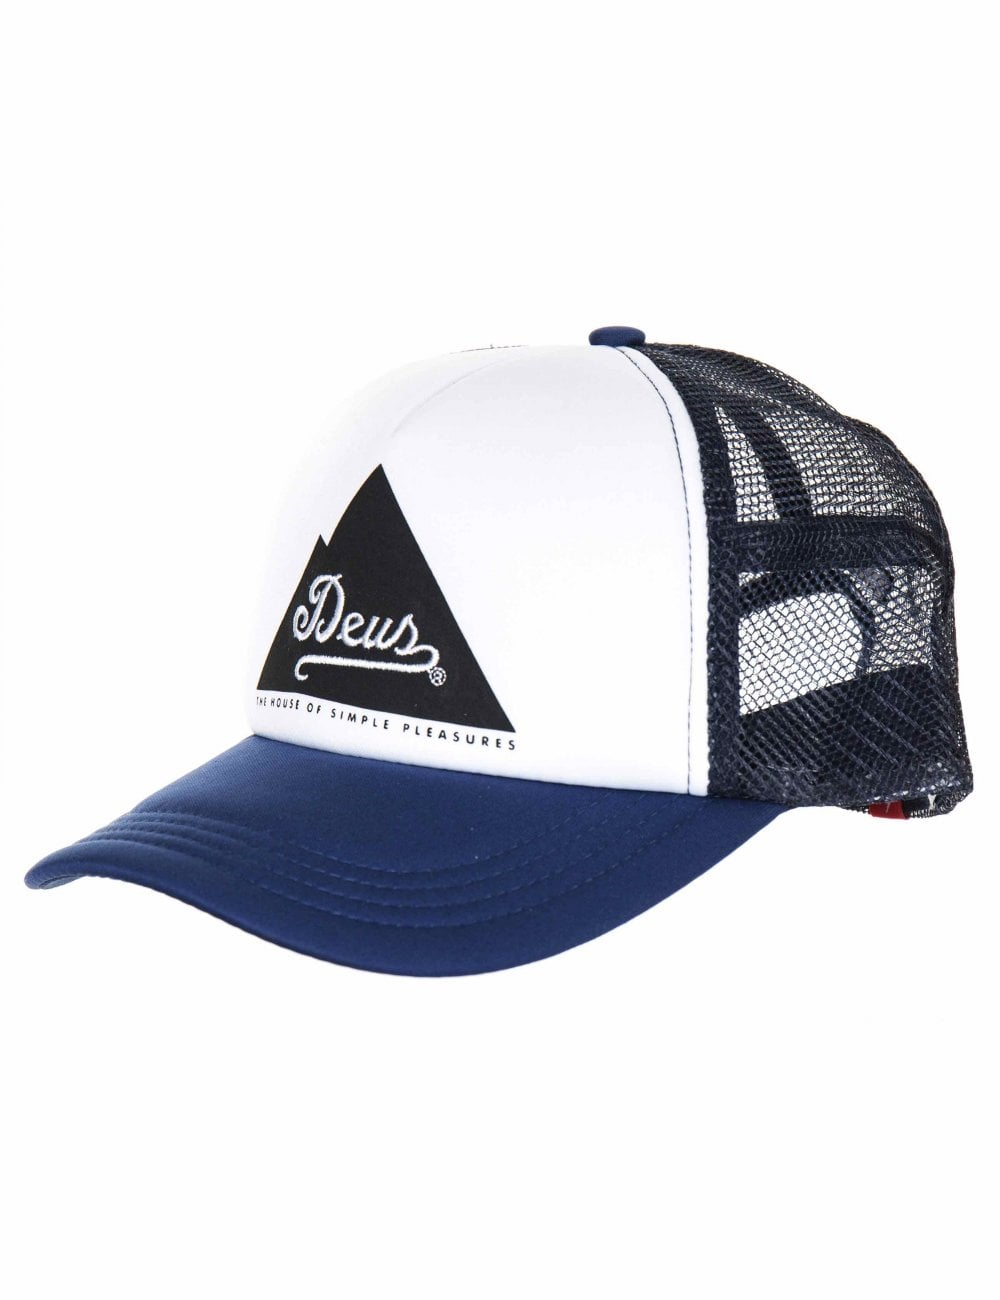 8b1d269e4870e Deus Ex Machina Peak Trucker Hat - Navy - Accessories from Fat ...